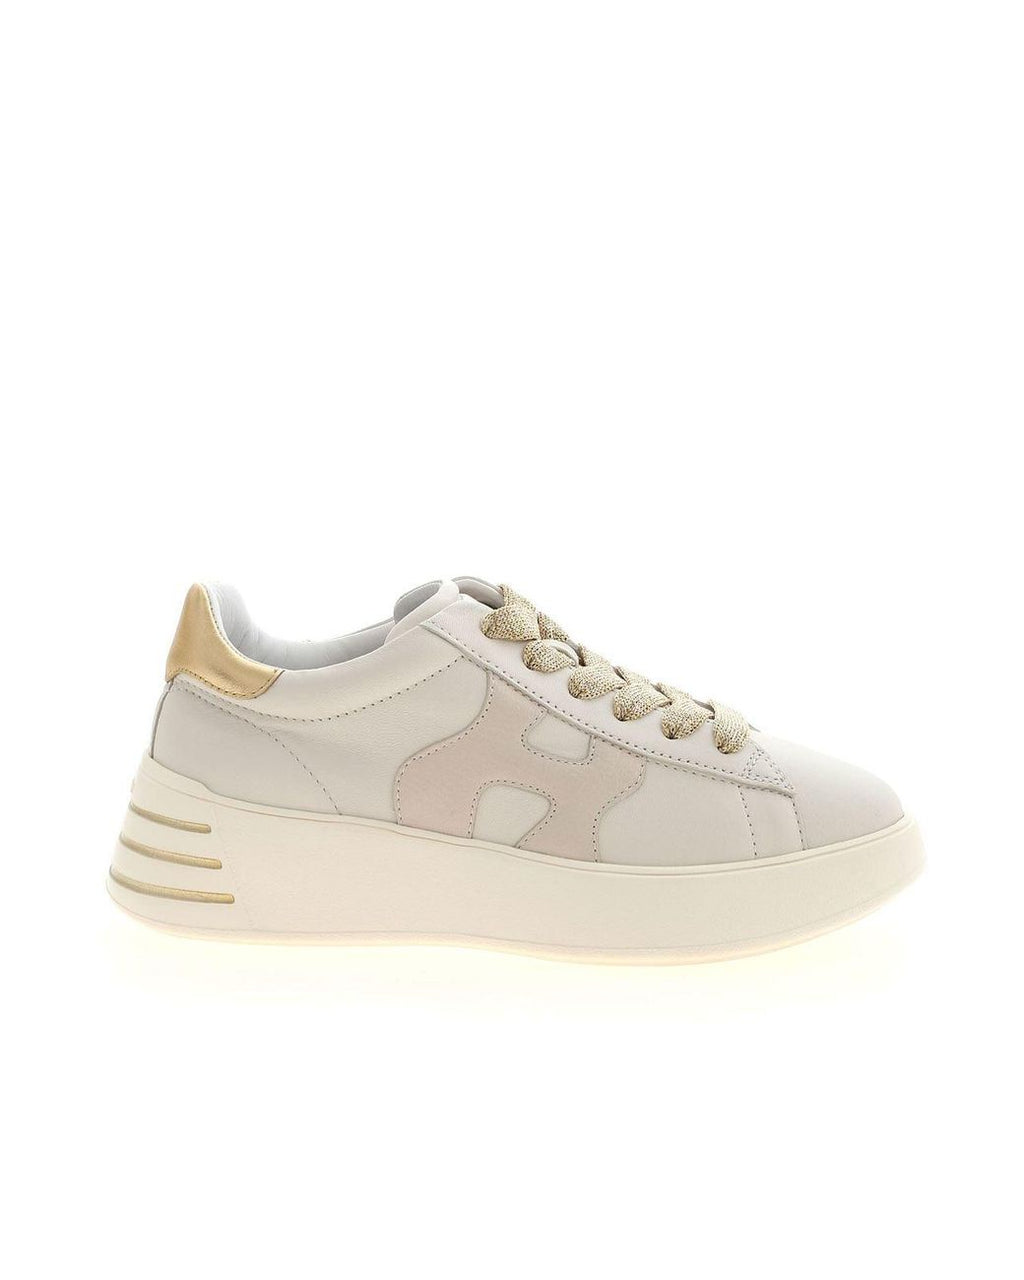 Hogan H564 Ivory/Gold Sneakers